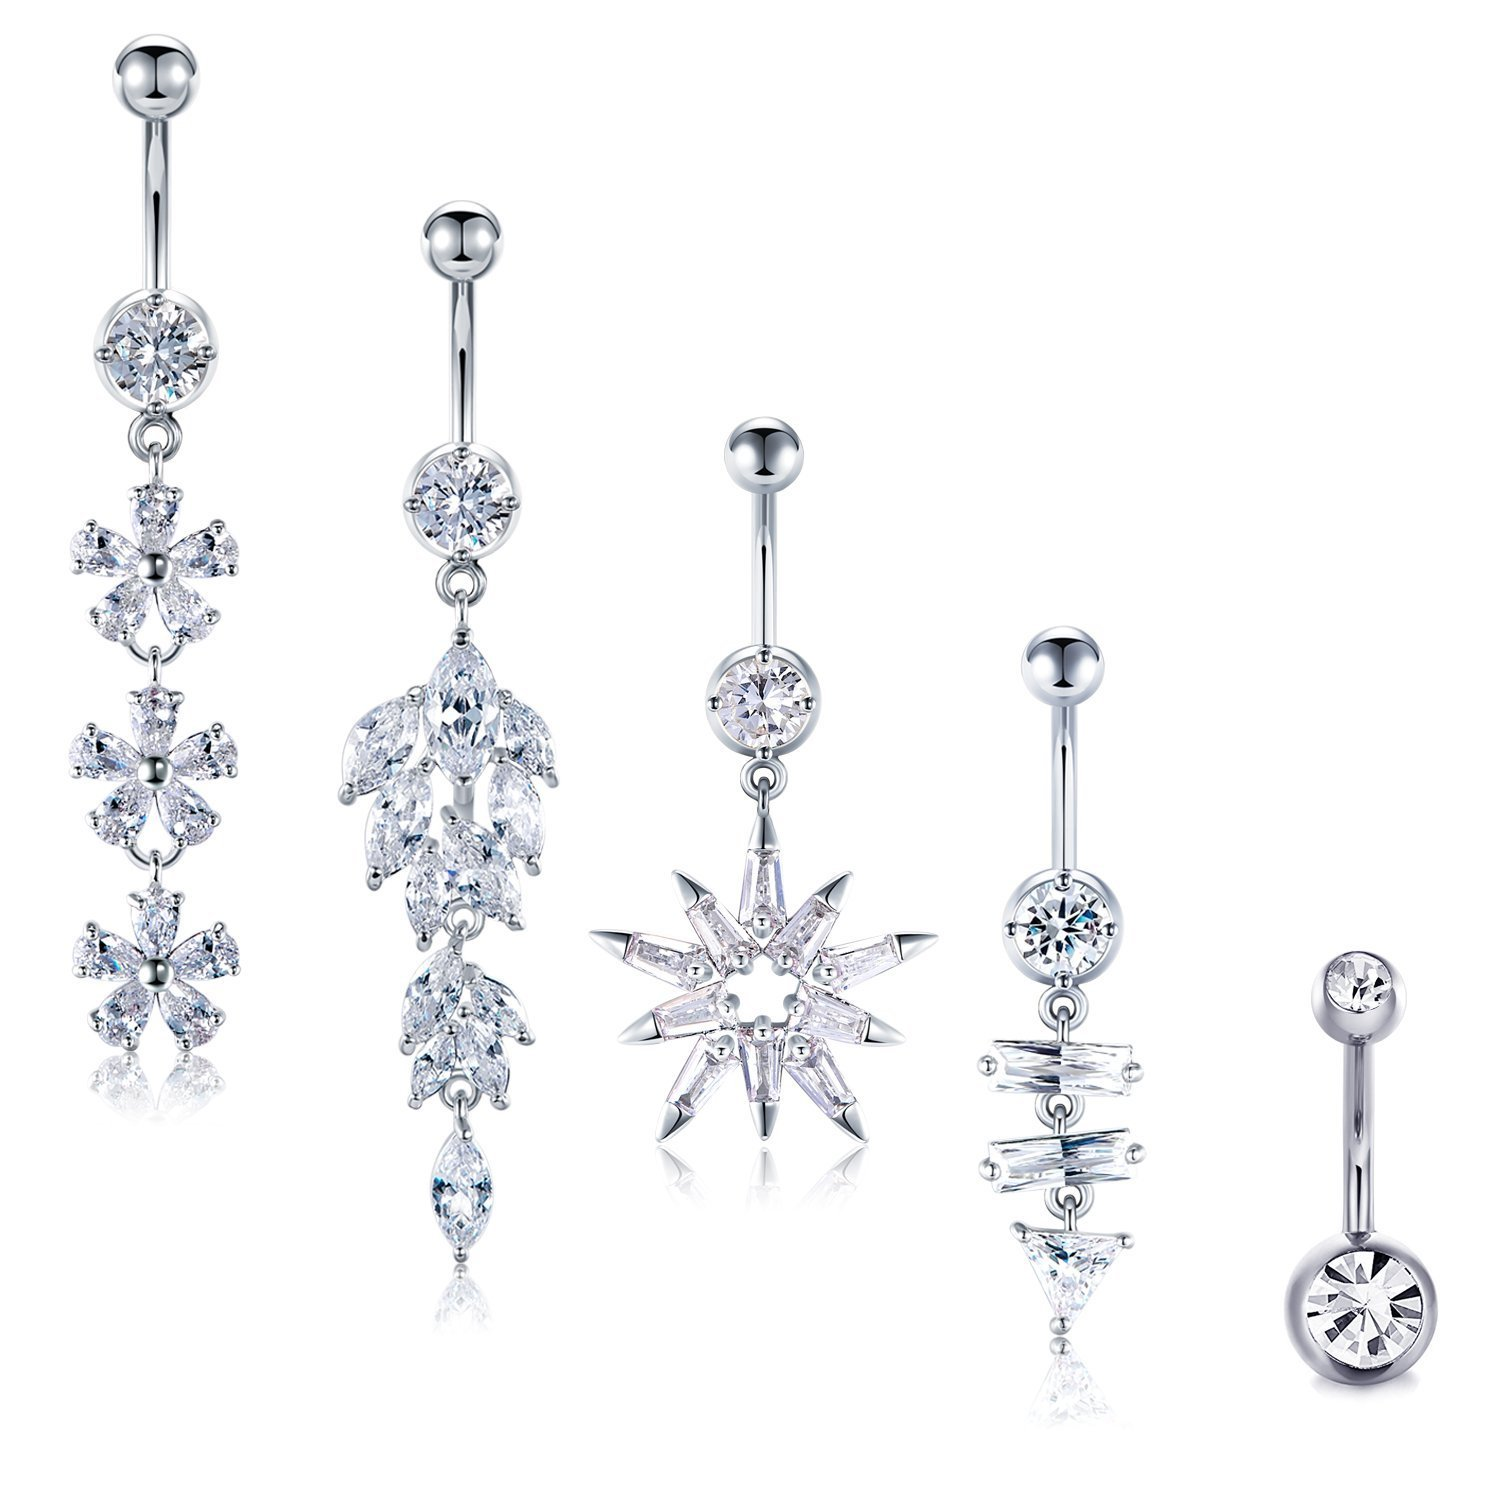 Amazon Com Fectas 14g Belly Button Rings Belly Ring Bars Stainless